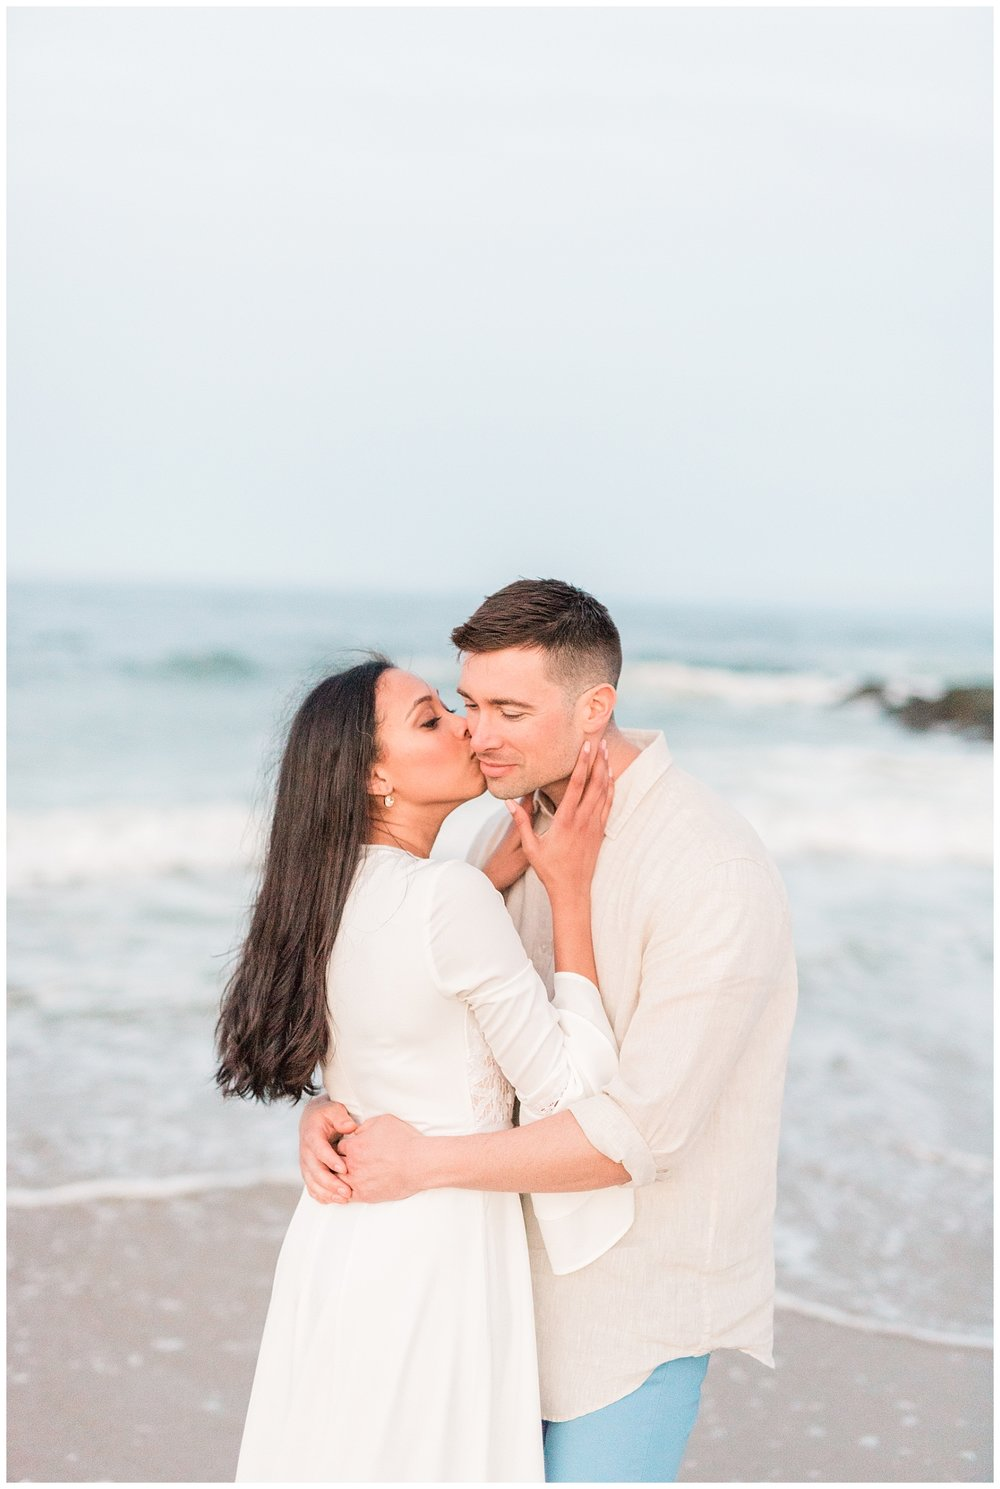 Spring-Lake-Divine-Park-Beach-Spring-Cherry-Blossom-NJ-Engagement-Session-Photo_0081.jpg